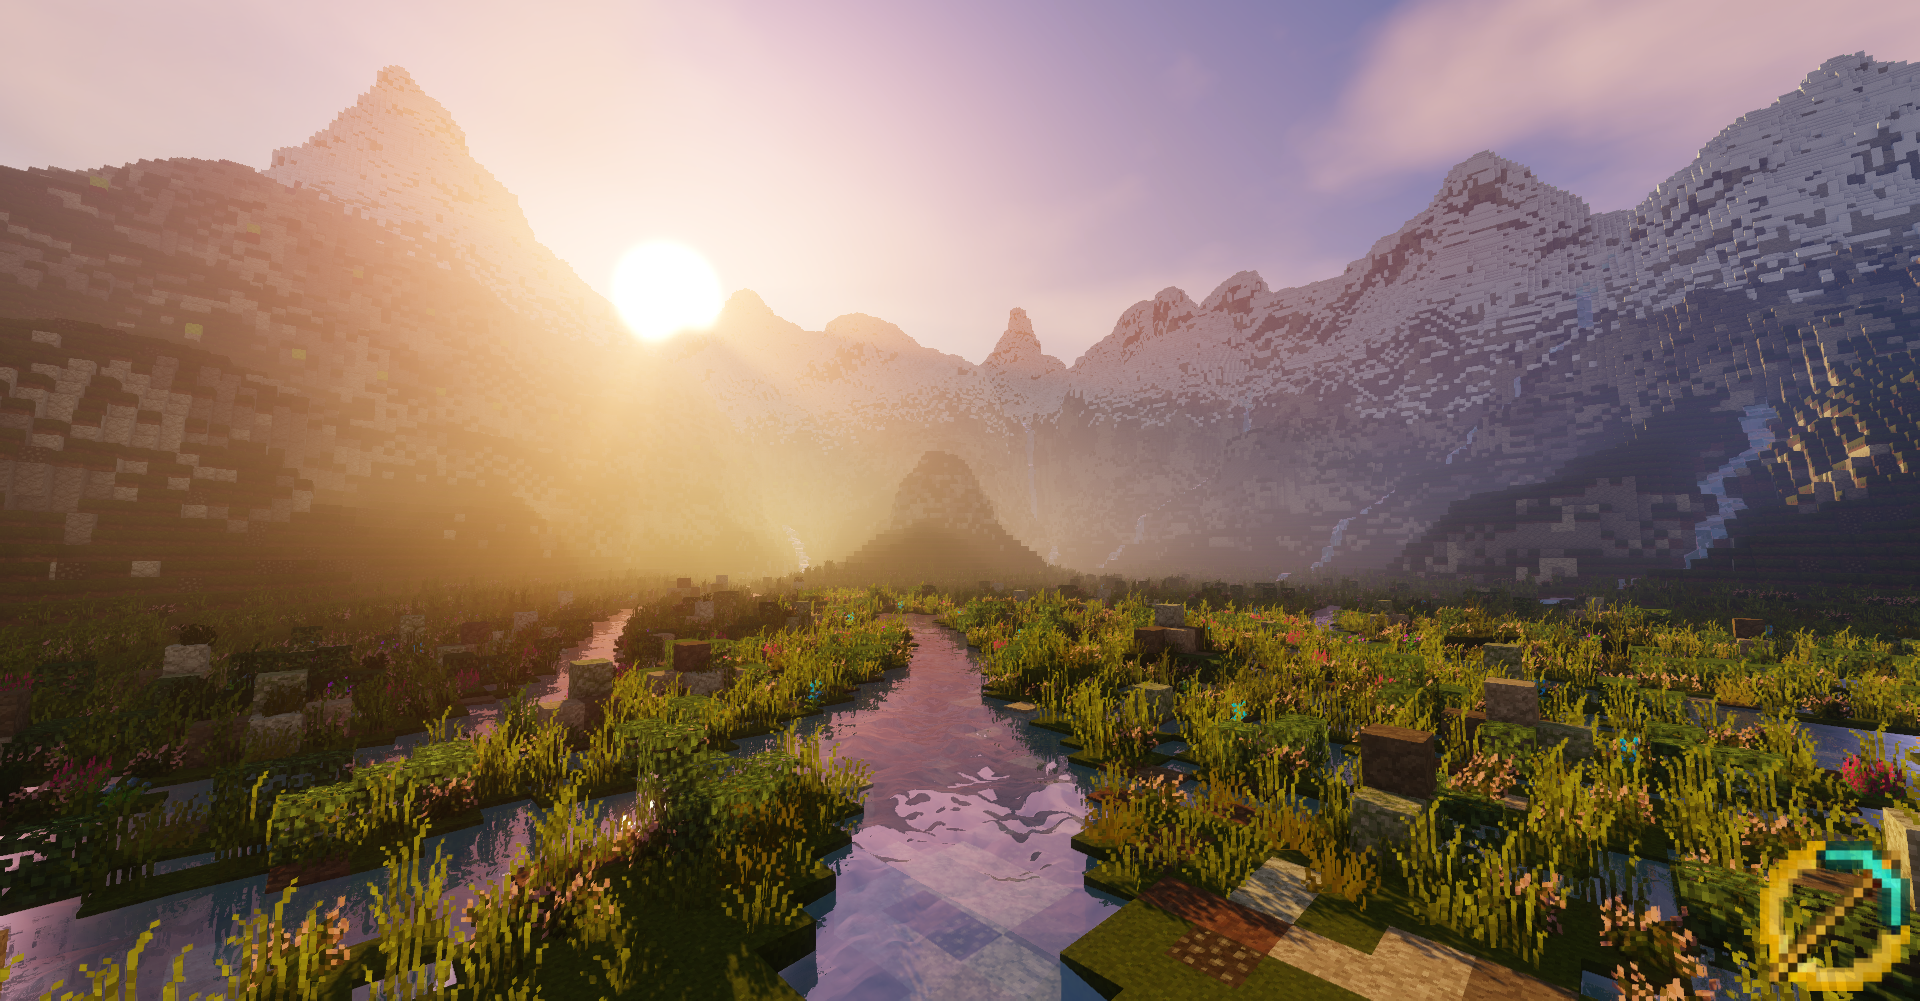 The sun rising above the mointains outside rivendell